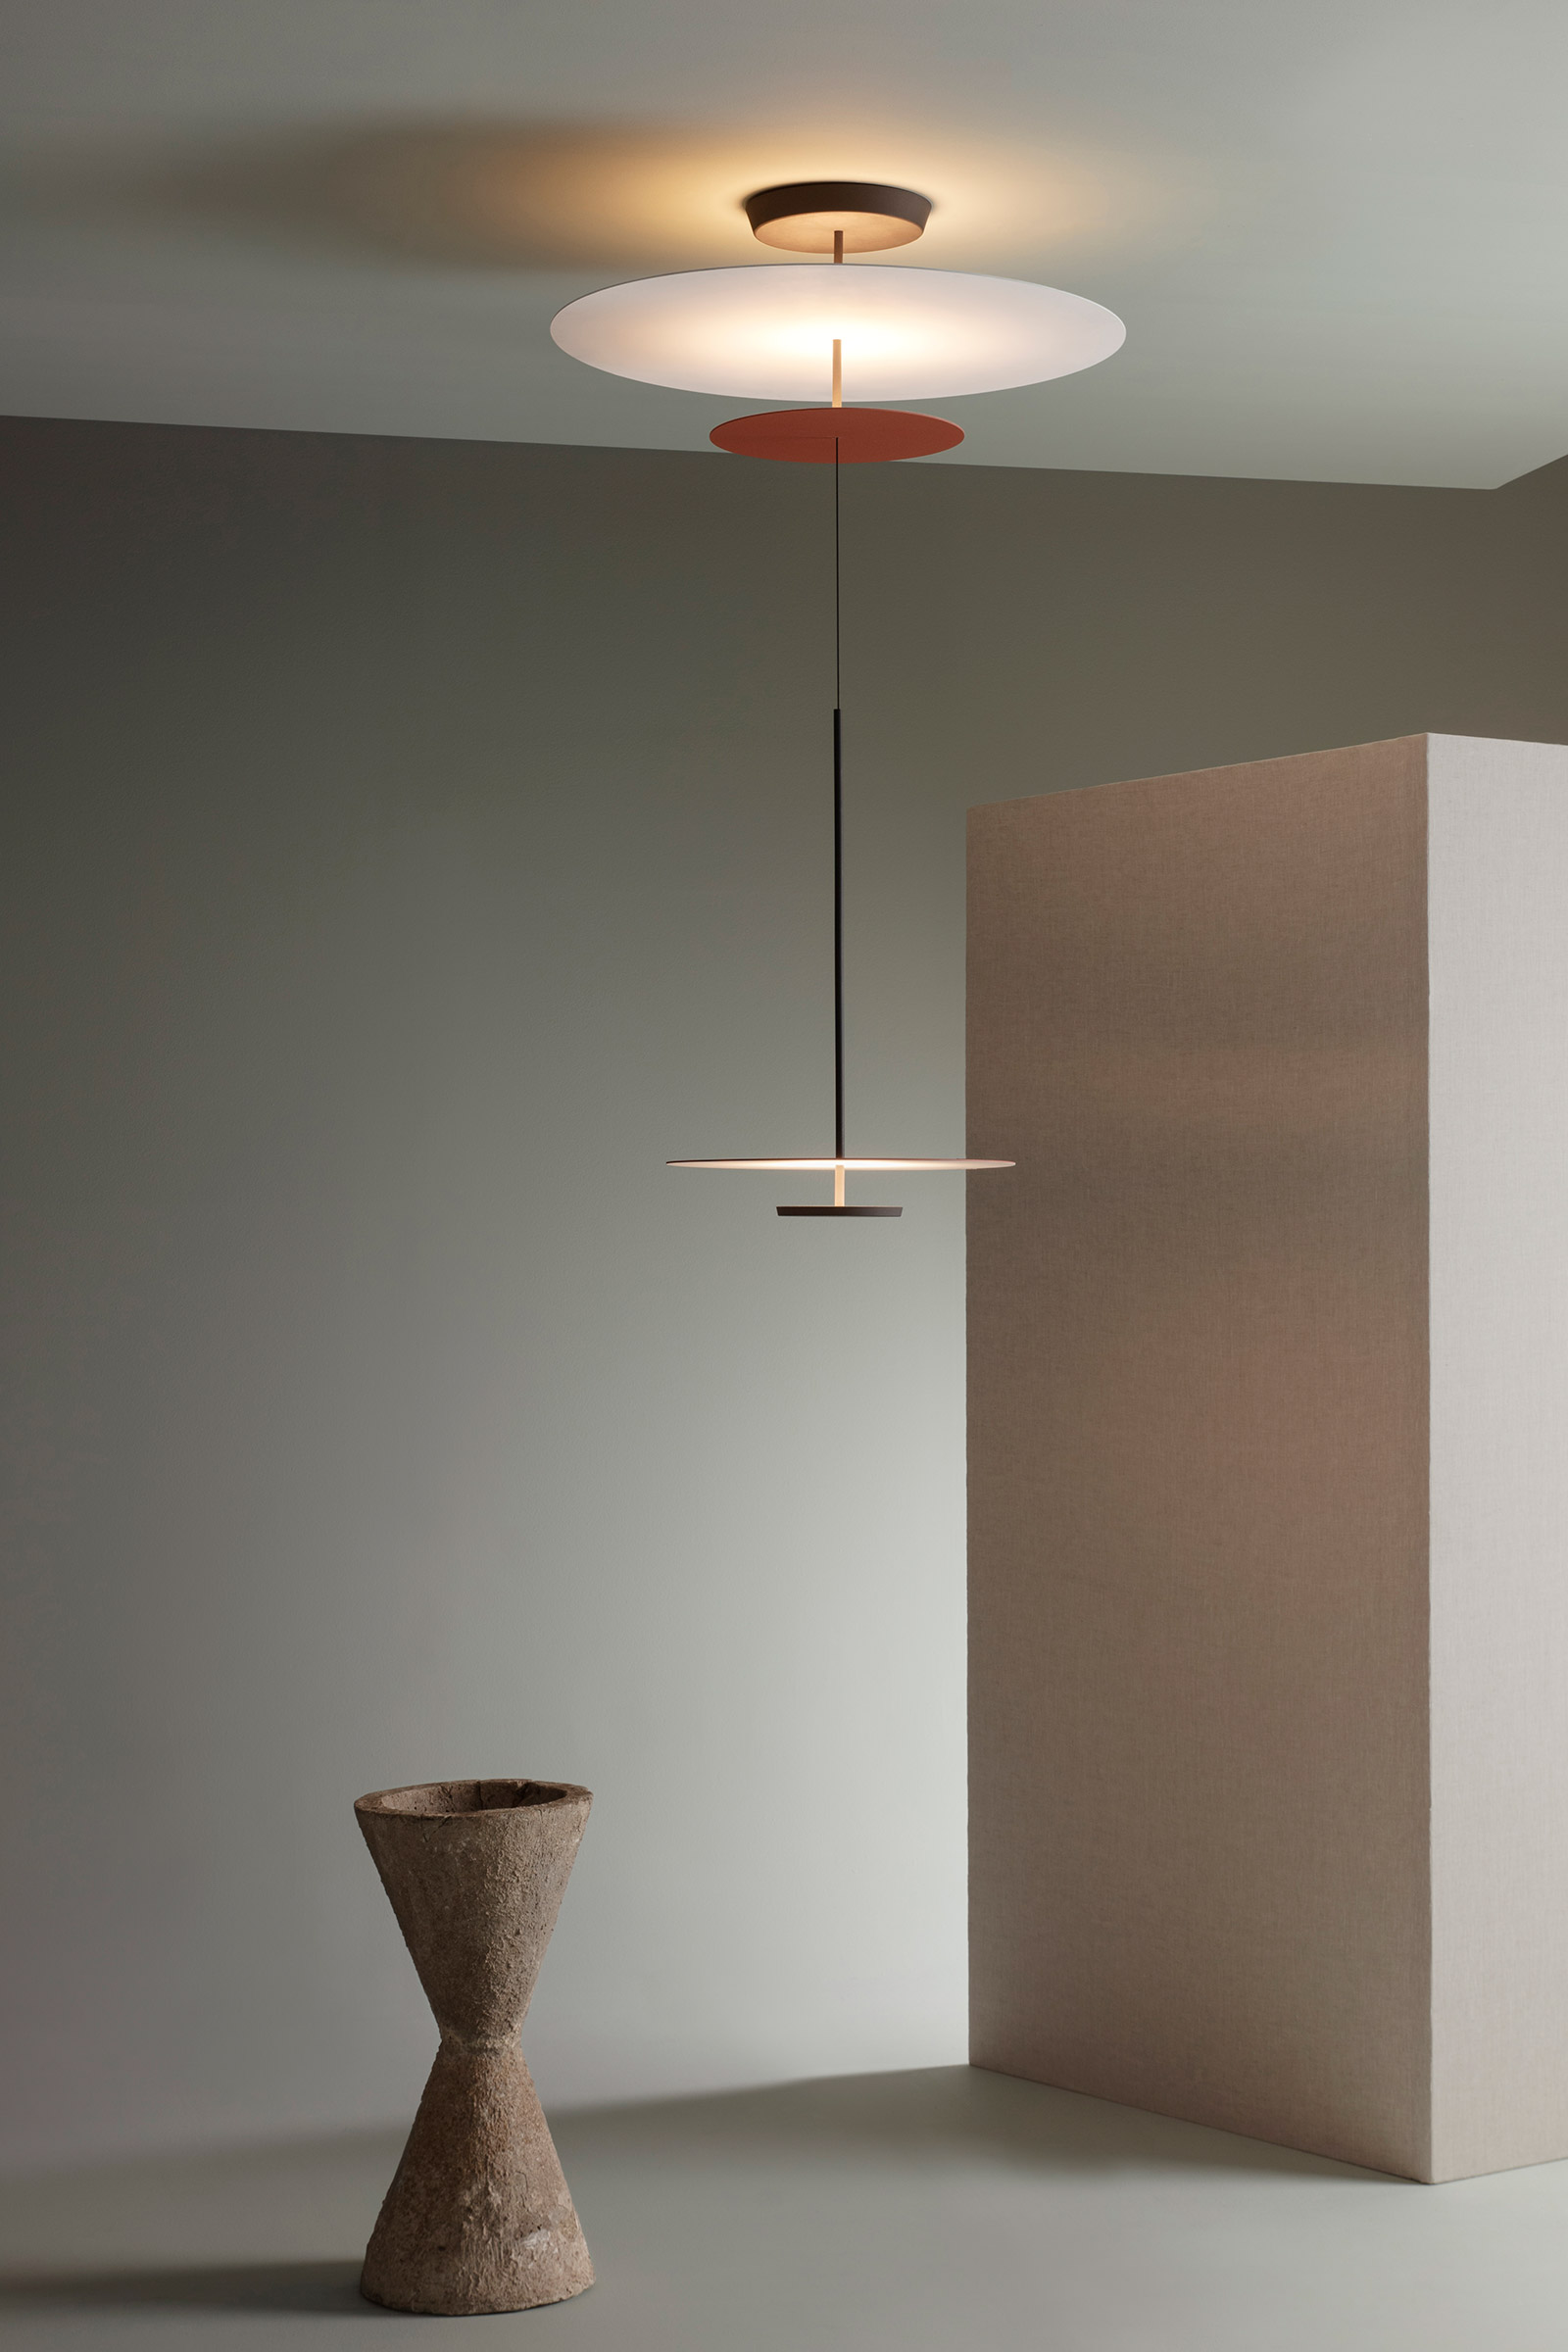 Flat hanging lamp by Vibia